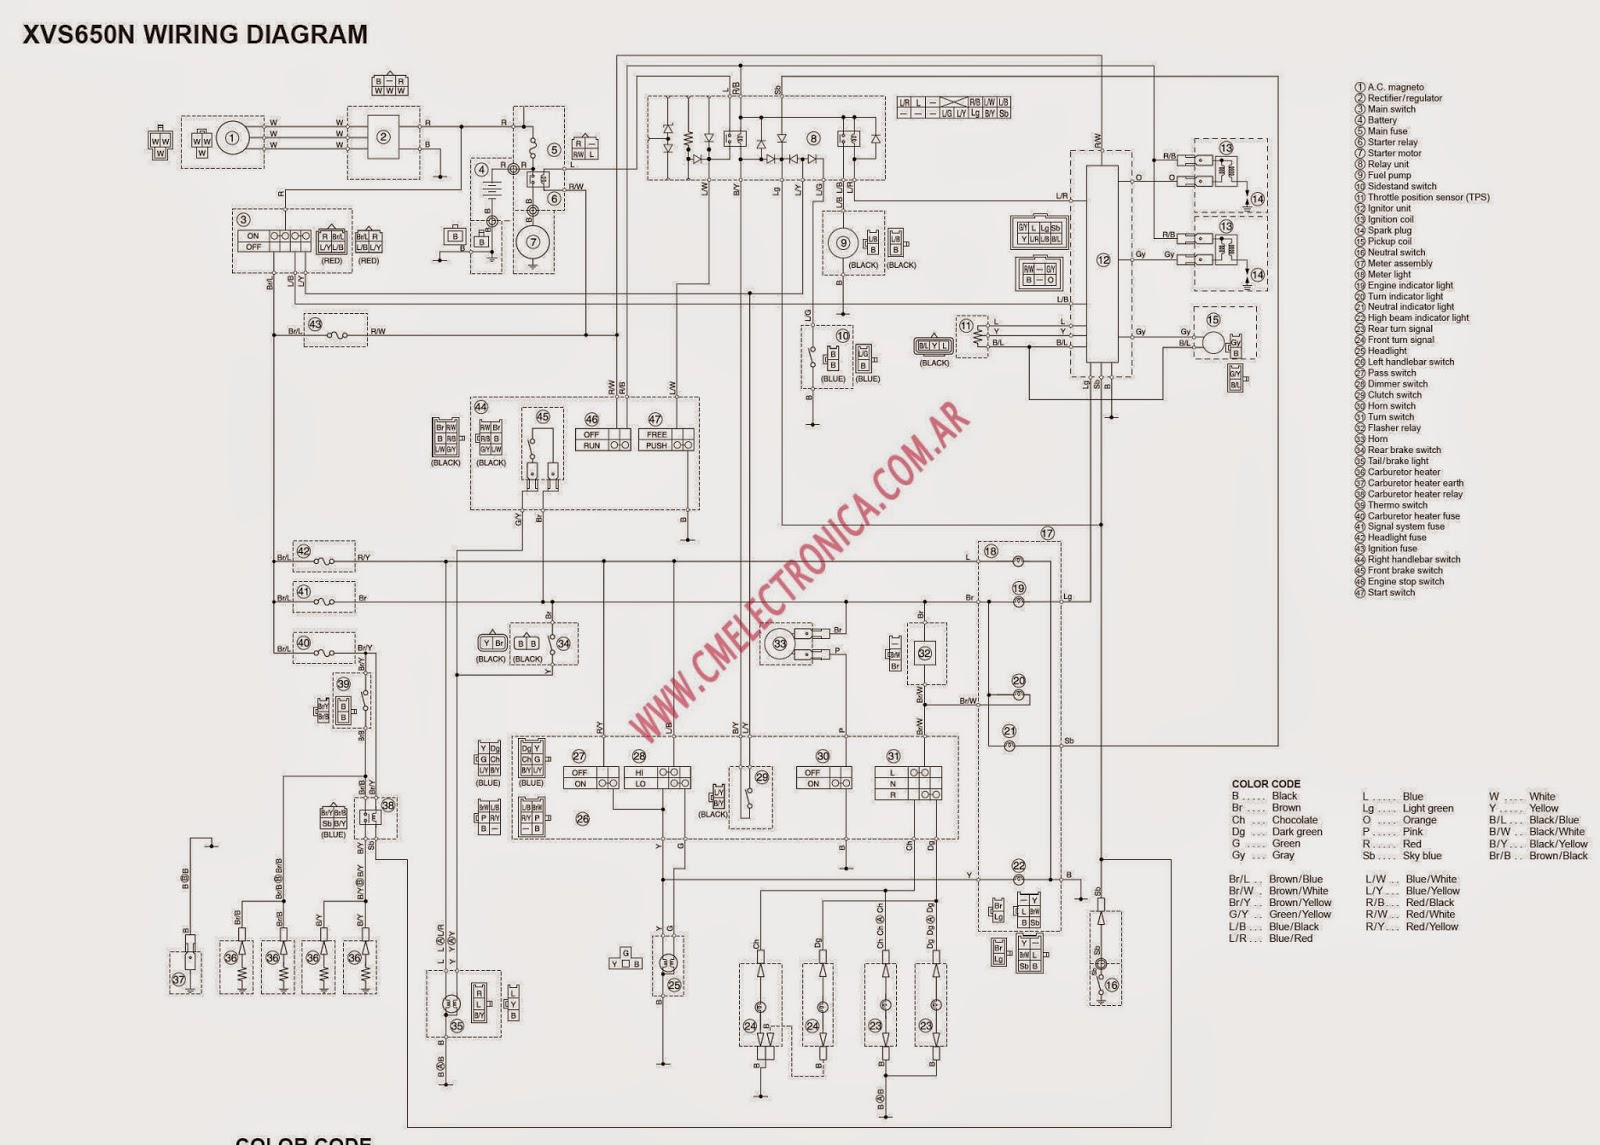 hight resolution of yamaha bws wiring diagram simple wiring schema basic house wiring diagrams yamaha v star 950 wiring